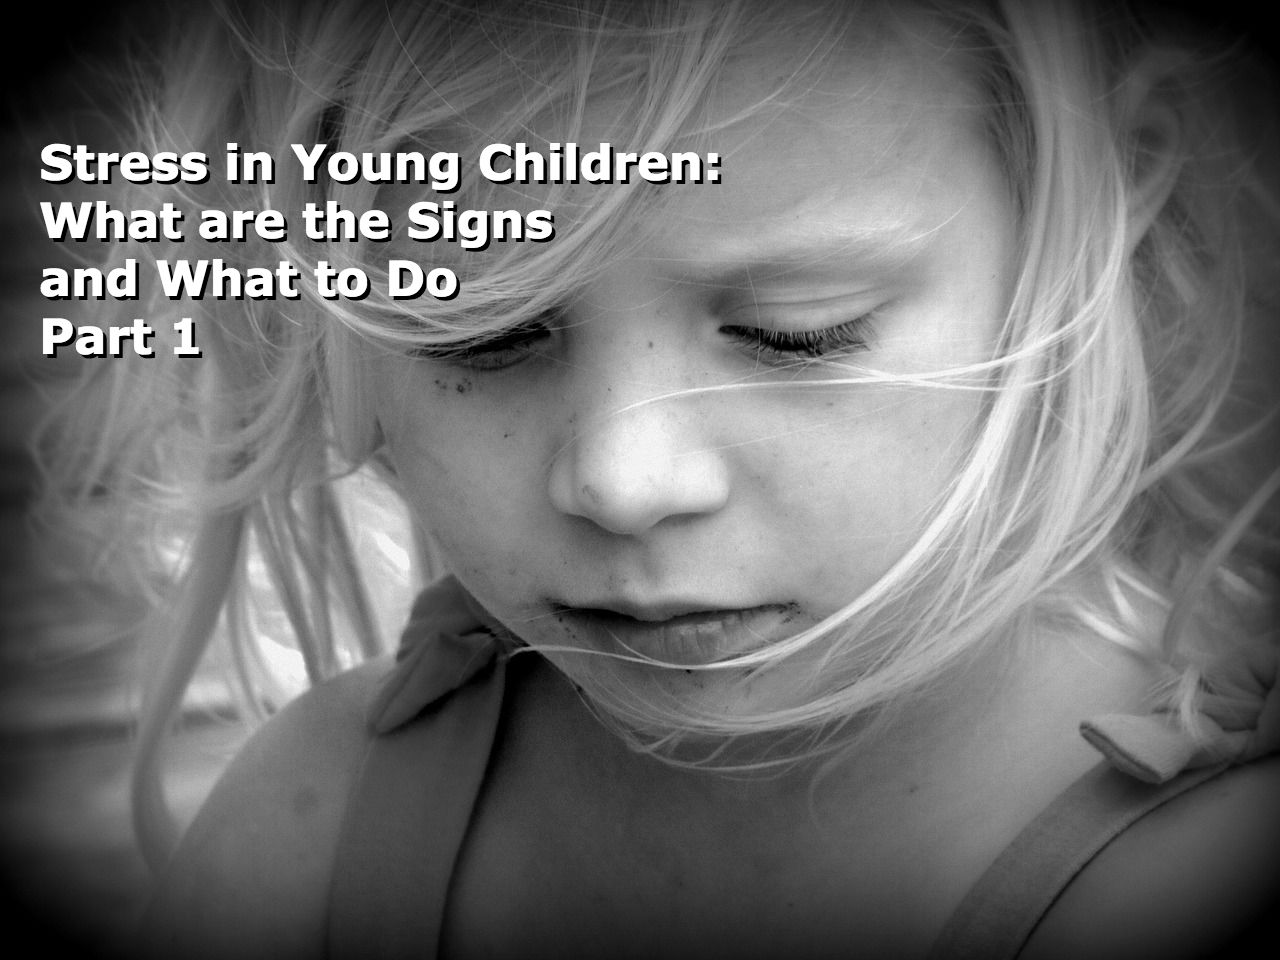 Stress In Young Children_What Are The Signs And What To Do Part 1 By Judy Banfield